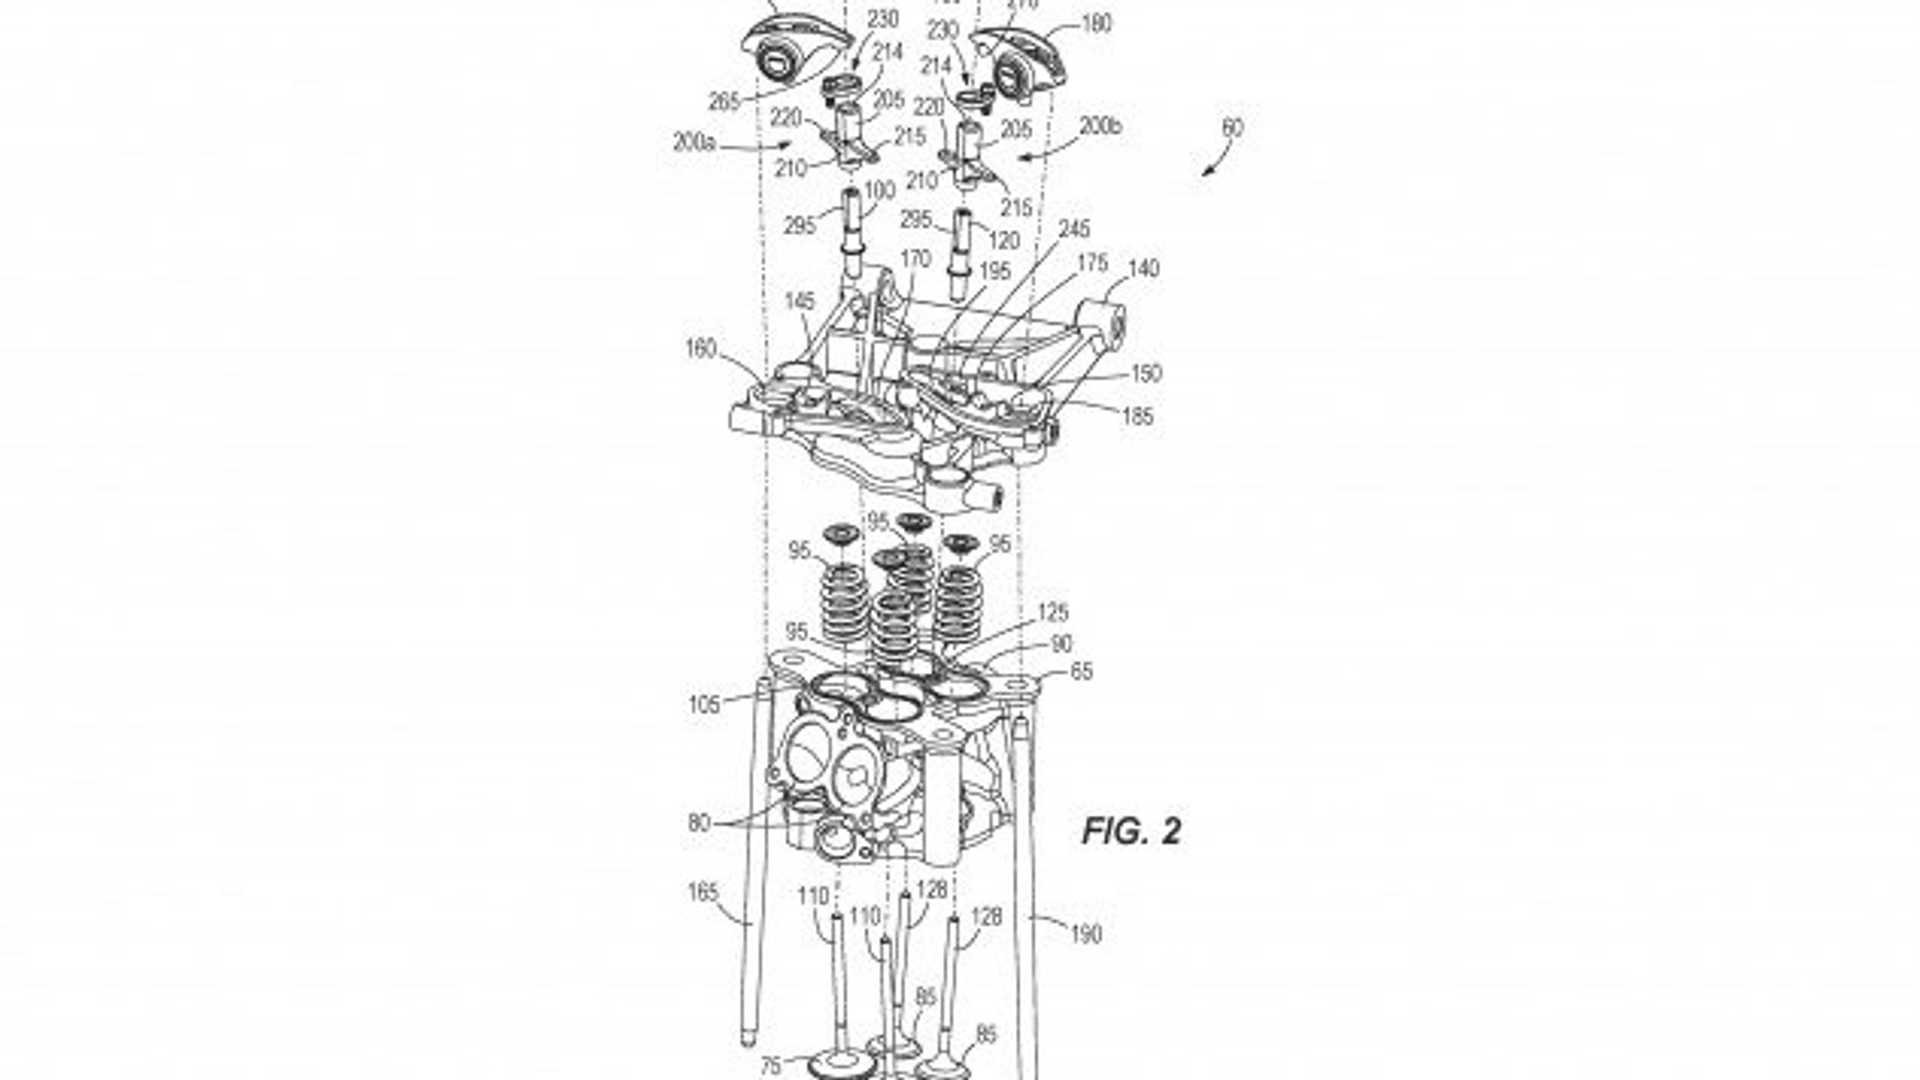 Harley Clings To Pushrod Technology With New Patent